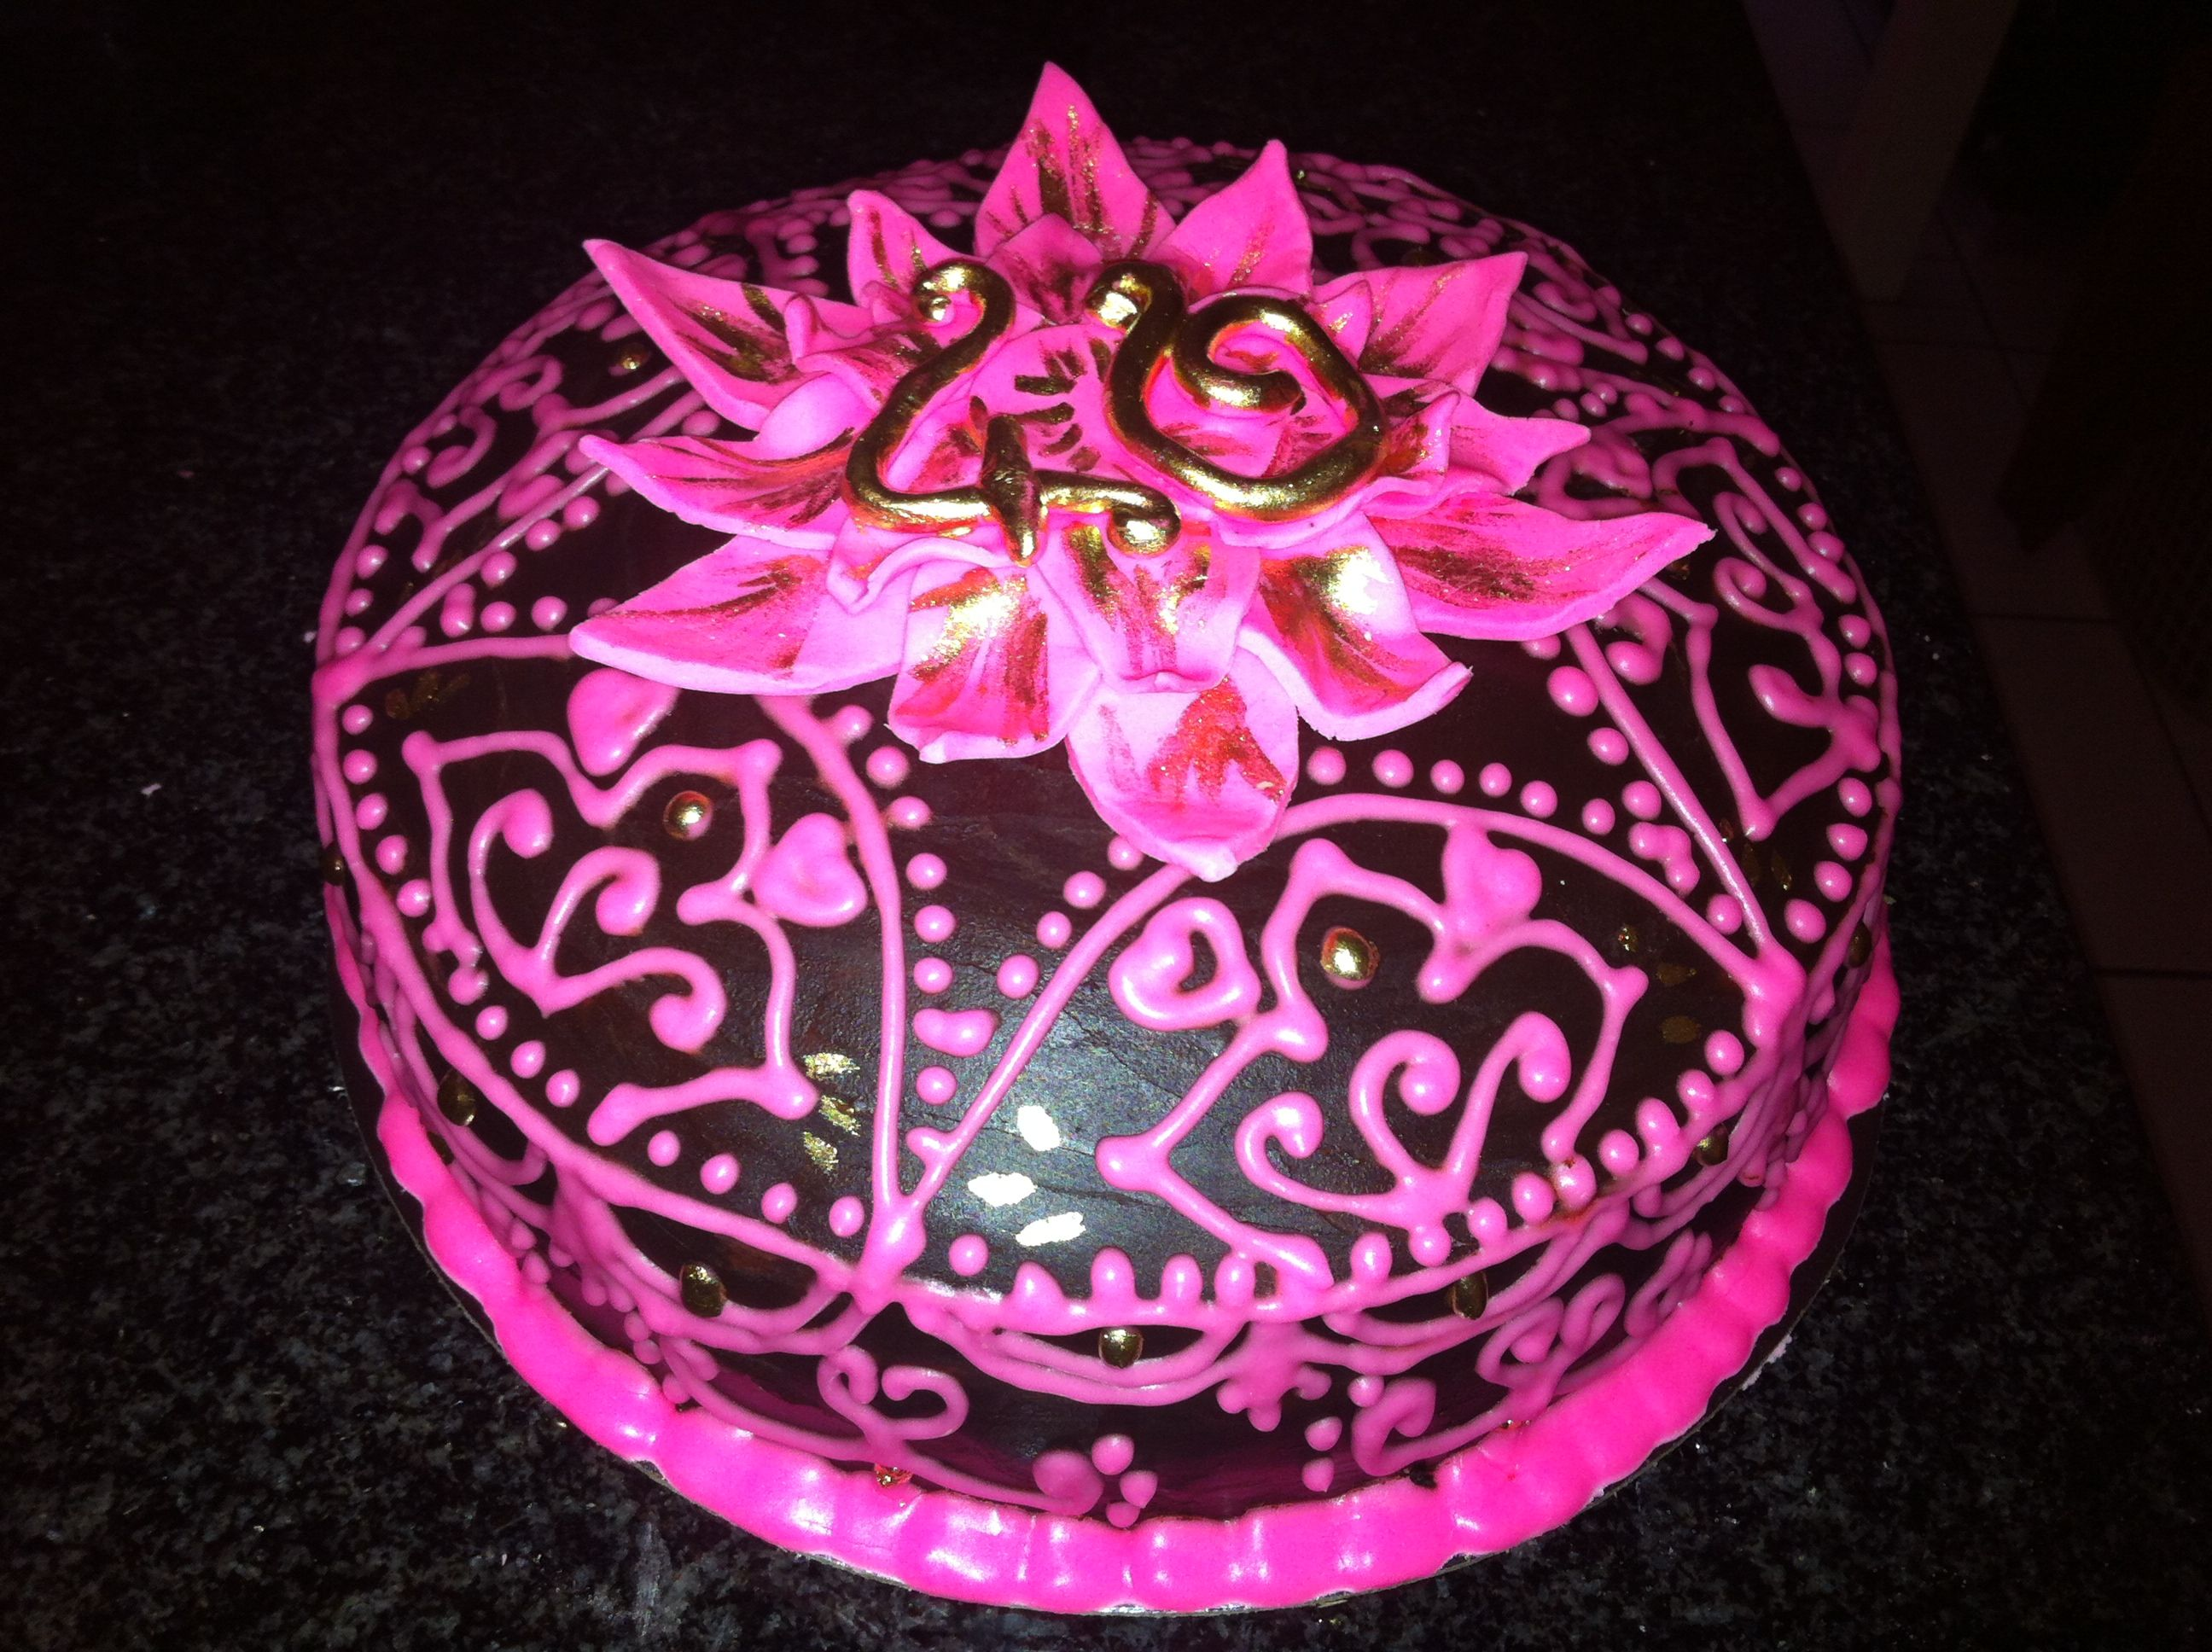 40th birthday cake for a very special friend who loves